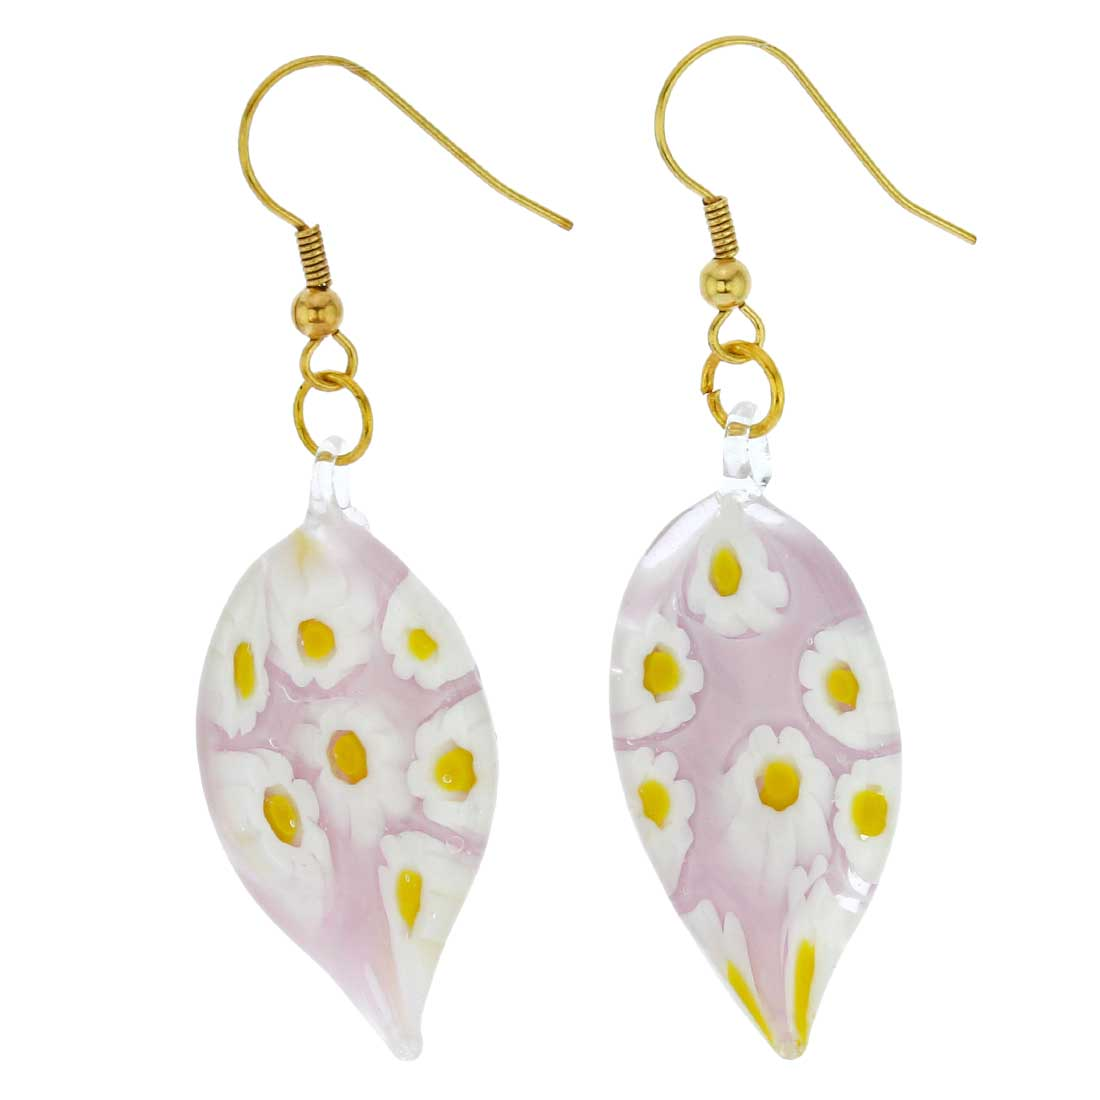 Lilac Daisy Leaf-shaped earrings